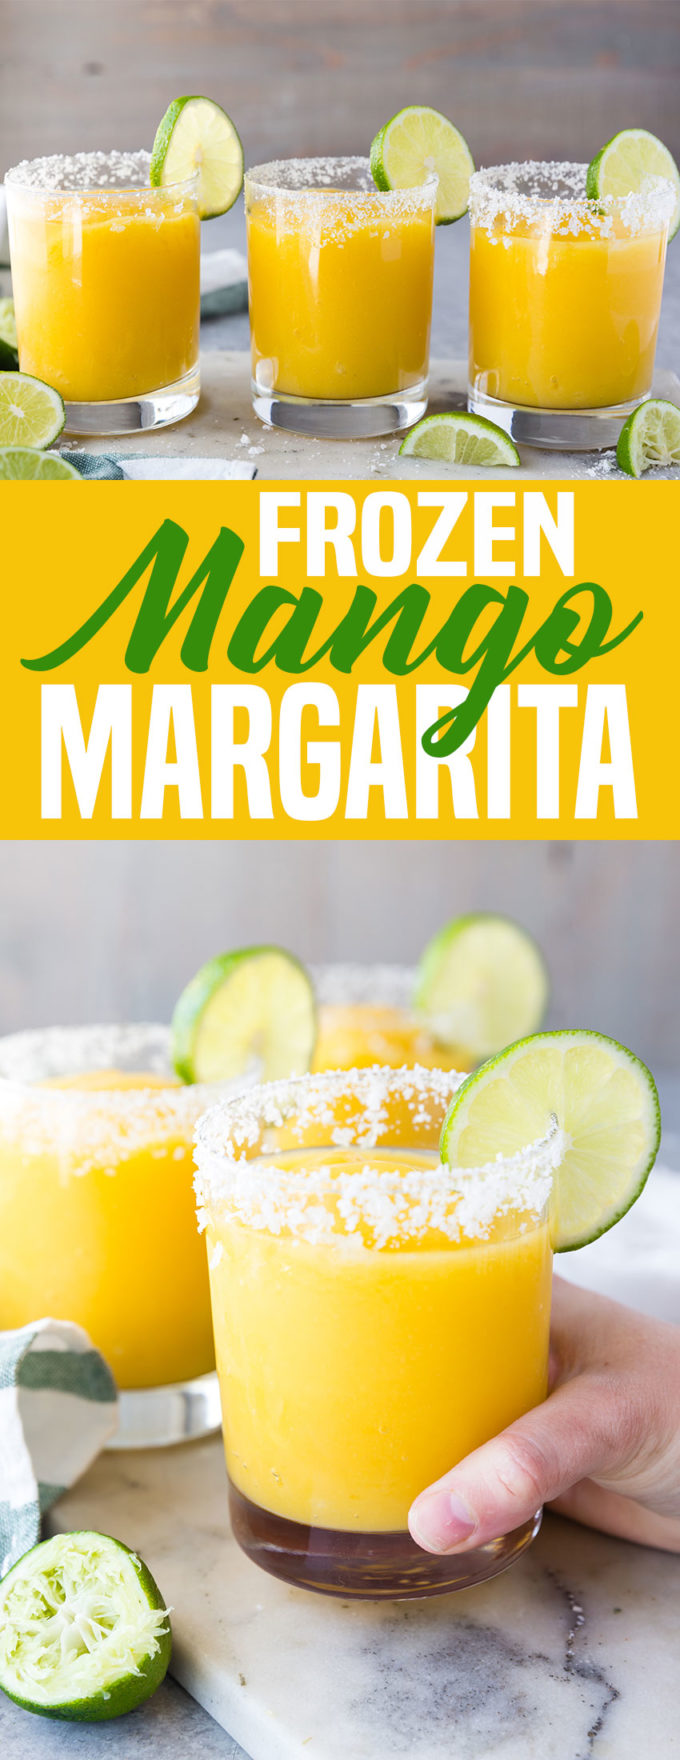 Imposing Se Mango Margaritas Are So Frozen Margaritas That Tasteso Good Frozen Mango Margaritas Easy Peasy Meals How To Make Frozen Margaritas Strawberry How To Make Frozen Margaritas Uk nice food How To Make Frozen Margaritas